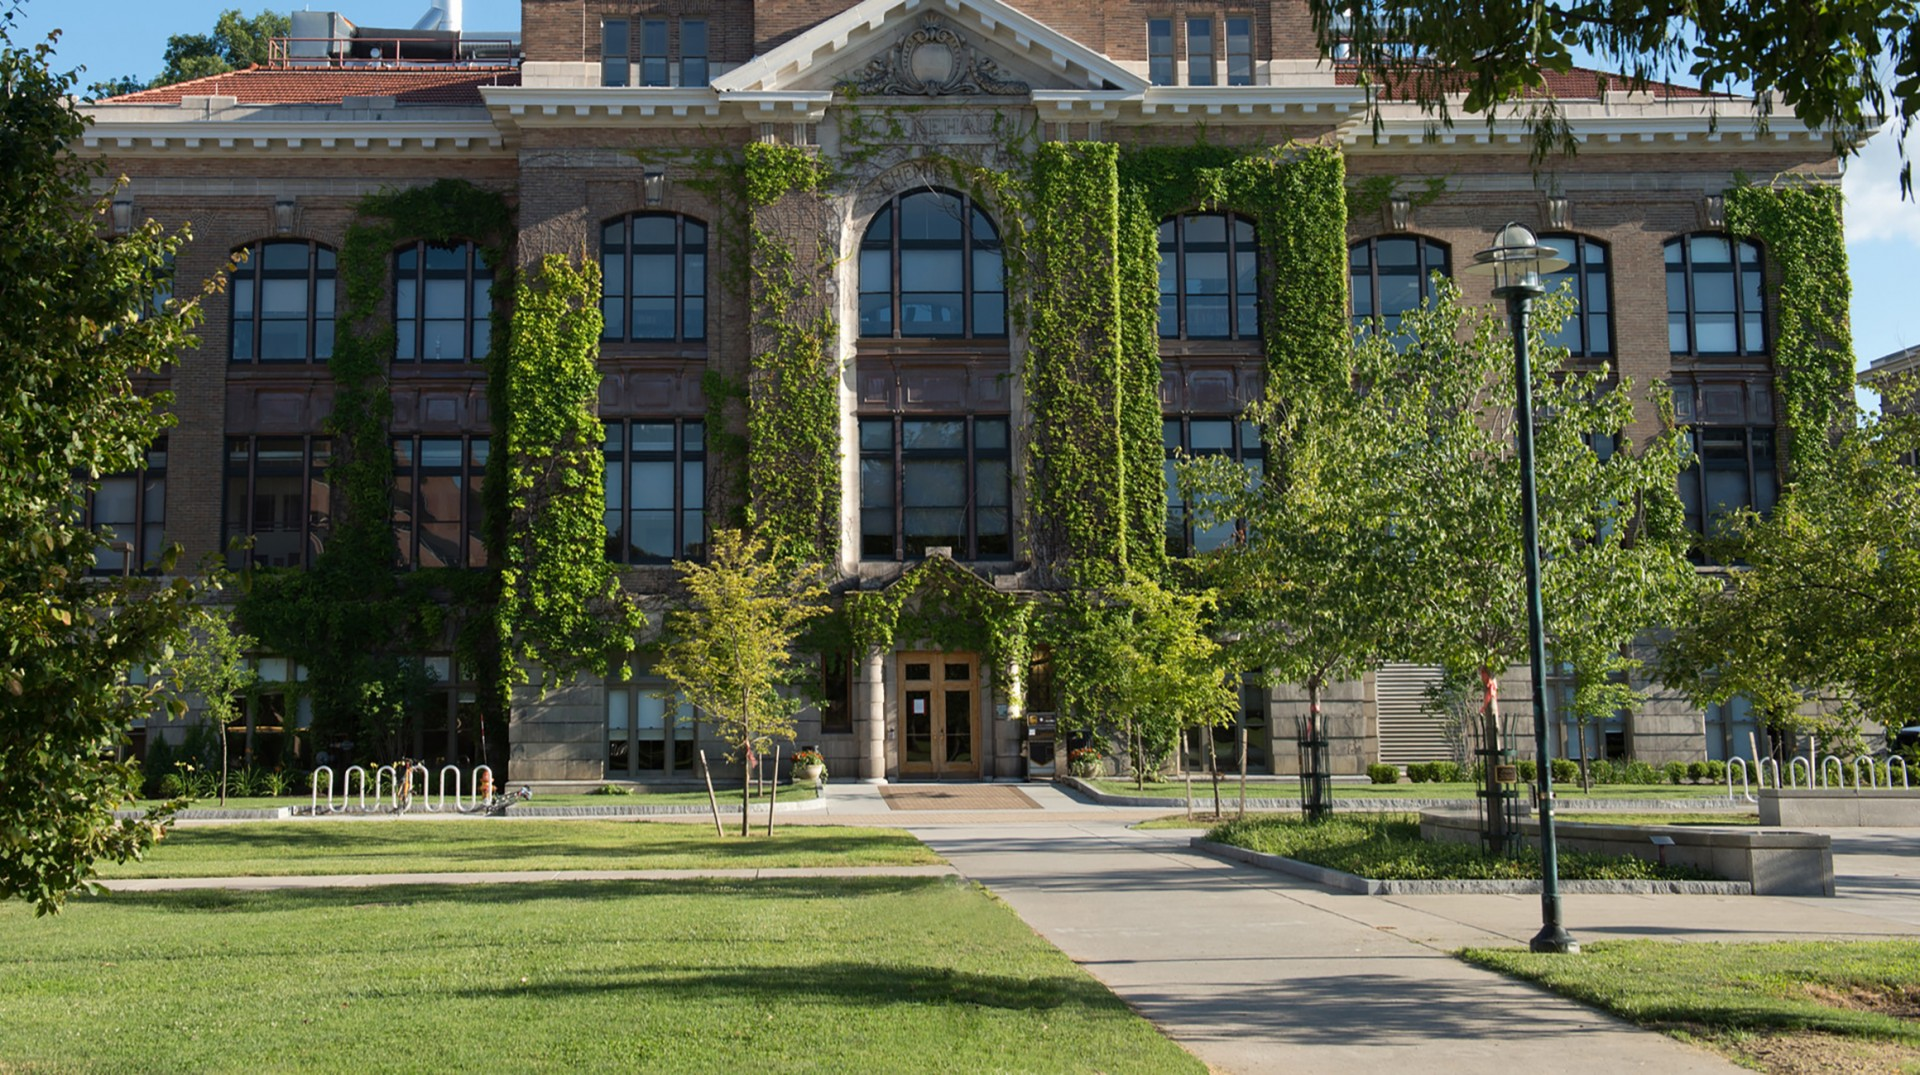 020 Bownecampus Essay Example University Of Arizona Honors College Stunning Prompt 1920